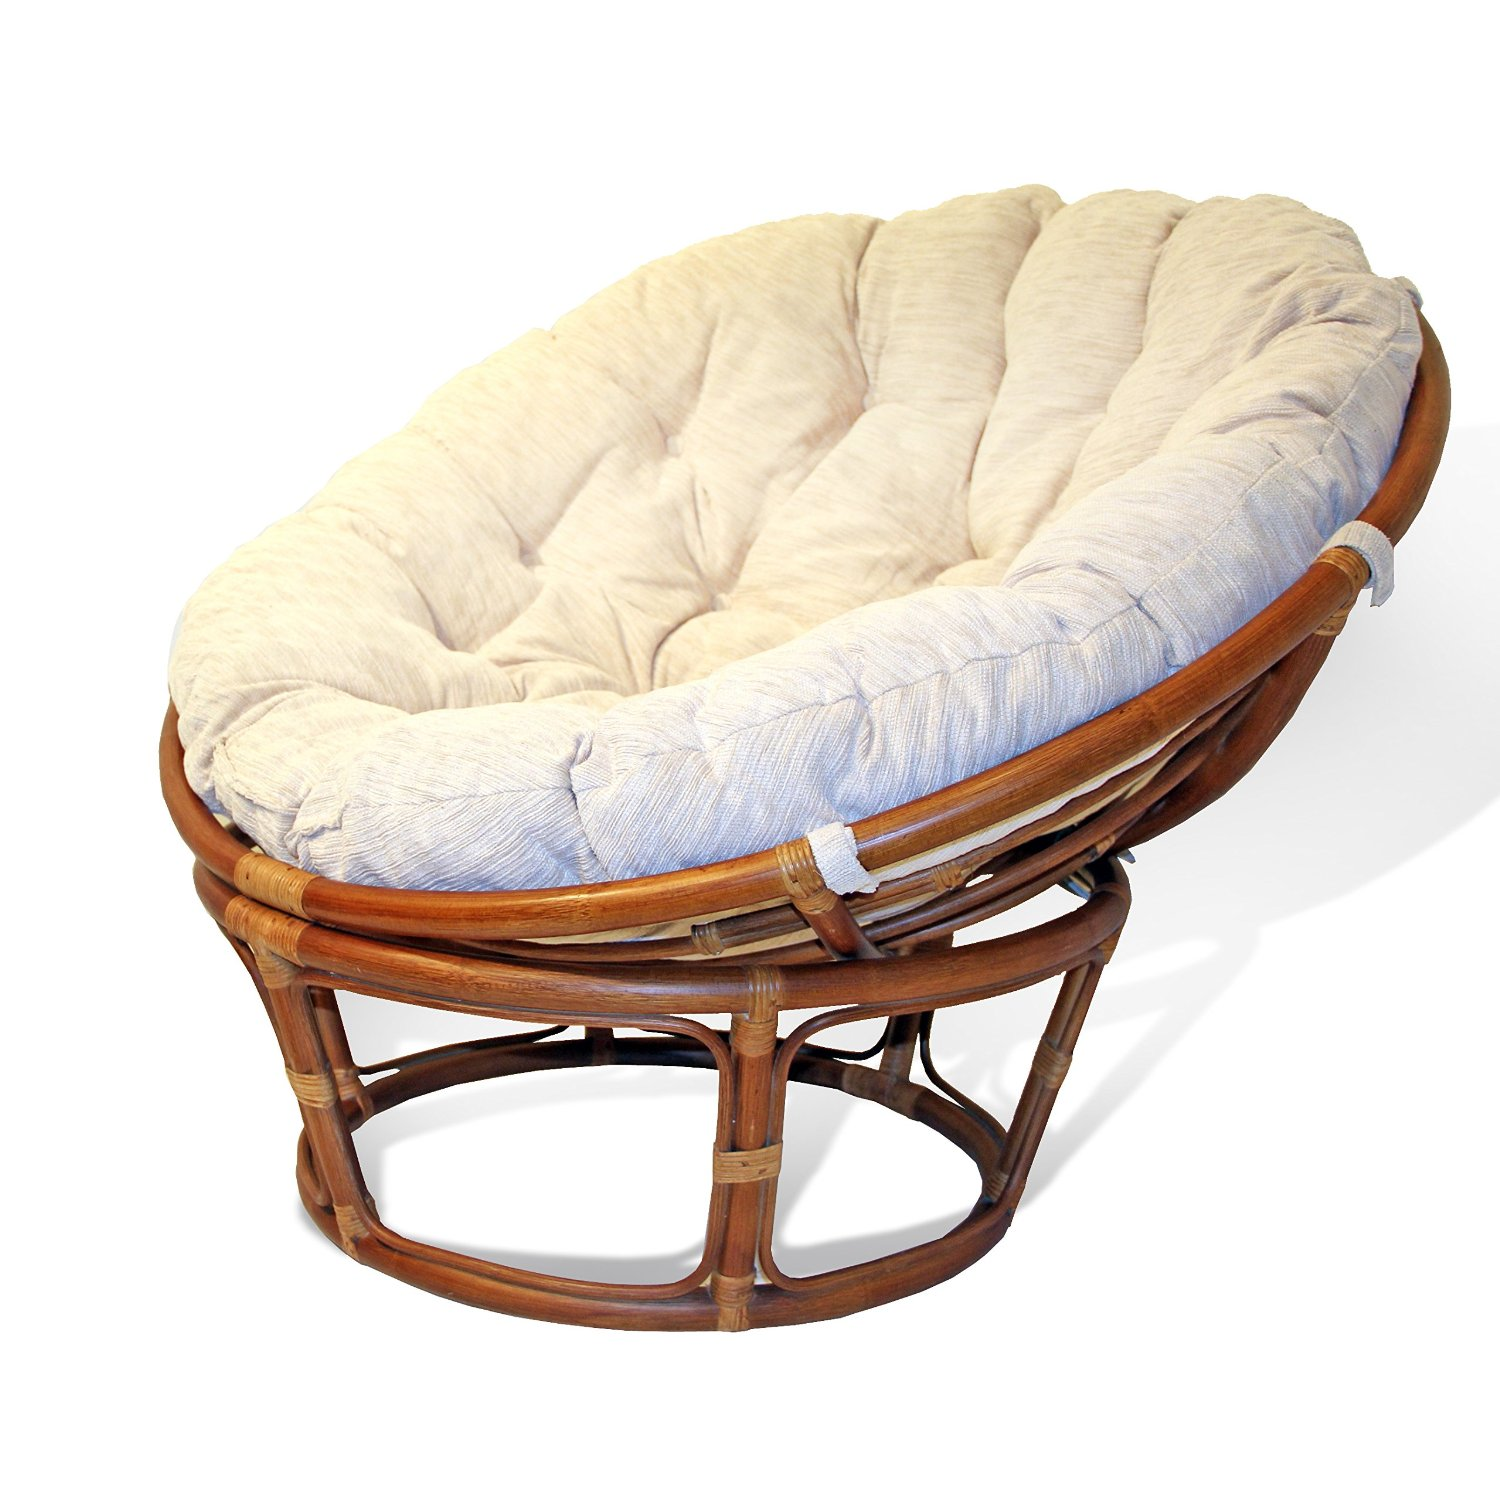 Cheap Wicker Papasan Find Wicker Papasan Deals On Line At